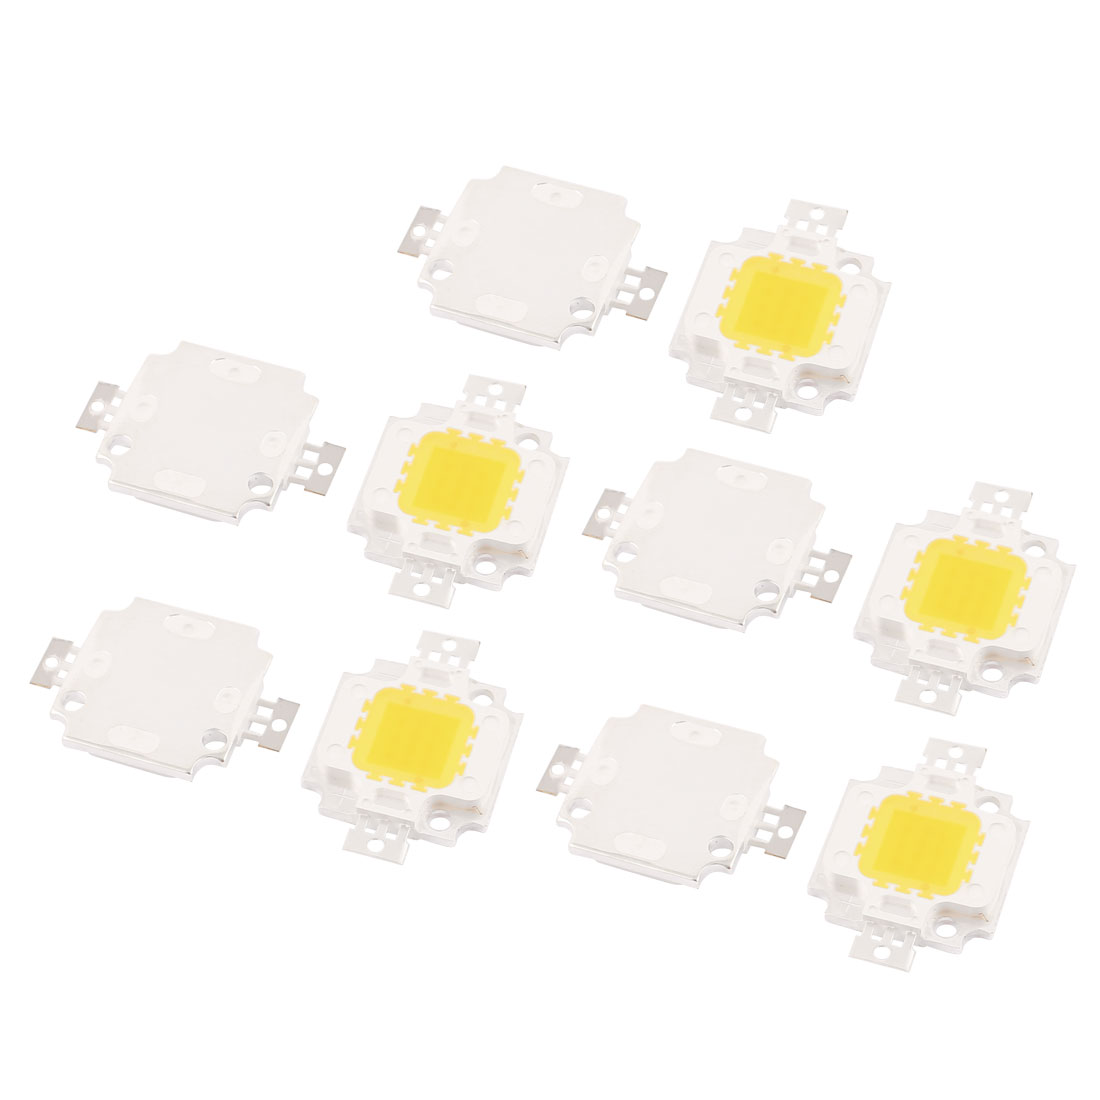 hight resolution of 10pcs 30 34v 10w led chip bulb pure white super bright high power for floodlight